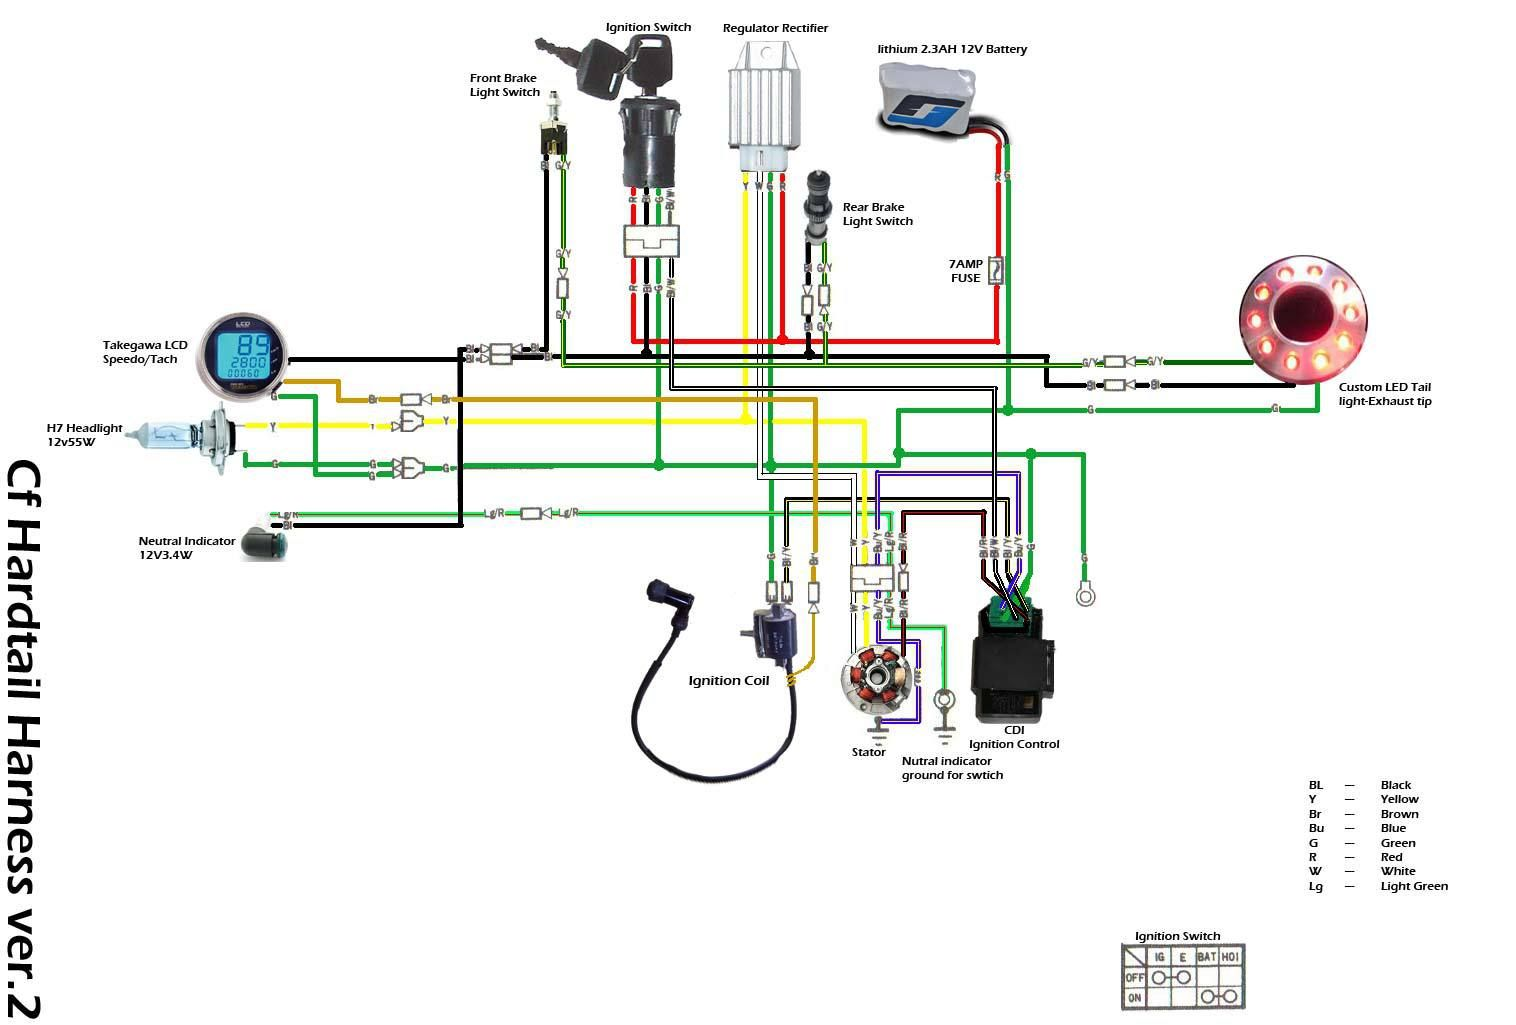 hight resolution of 110cc basic wiring setup atvconnection com atv enthusiast community 110cc atv wiring switch